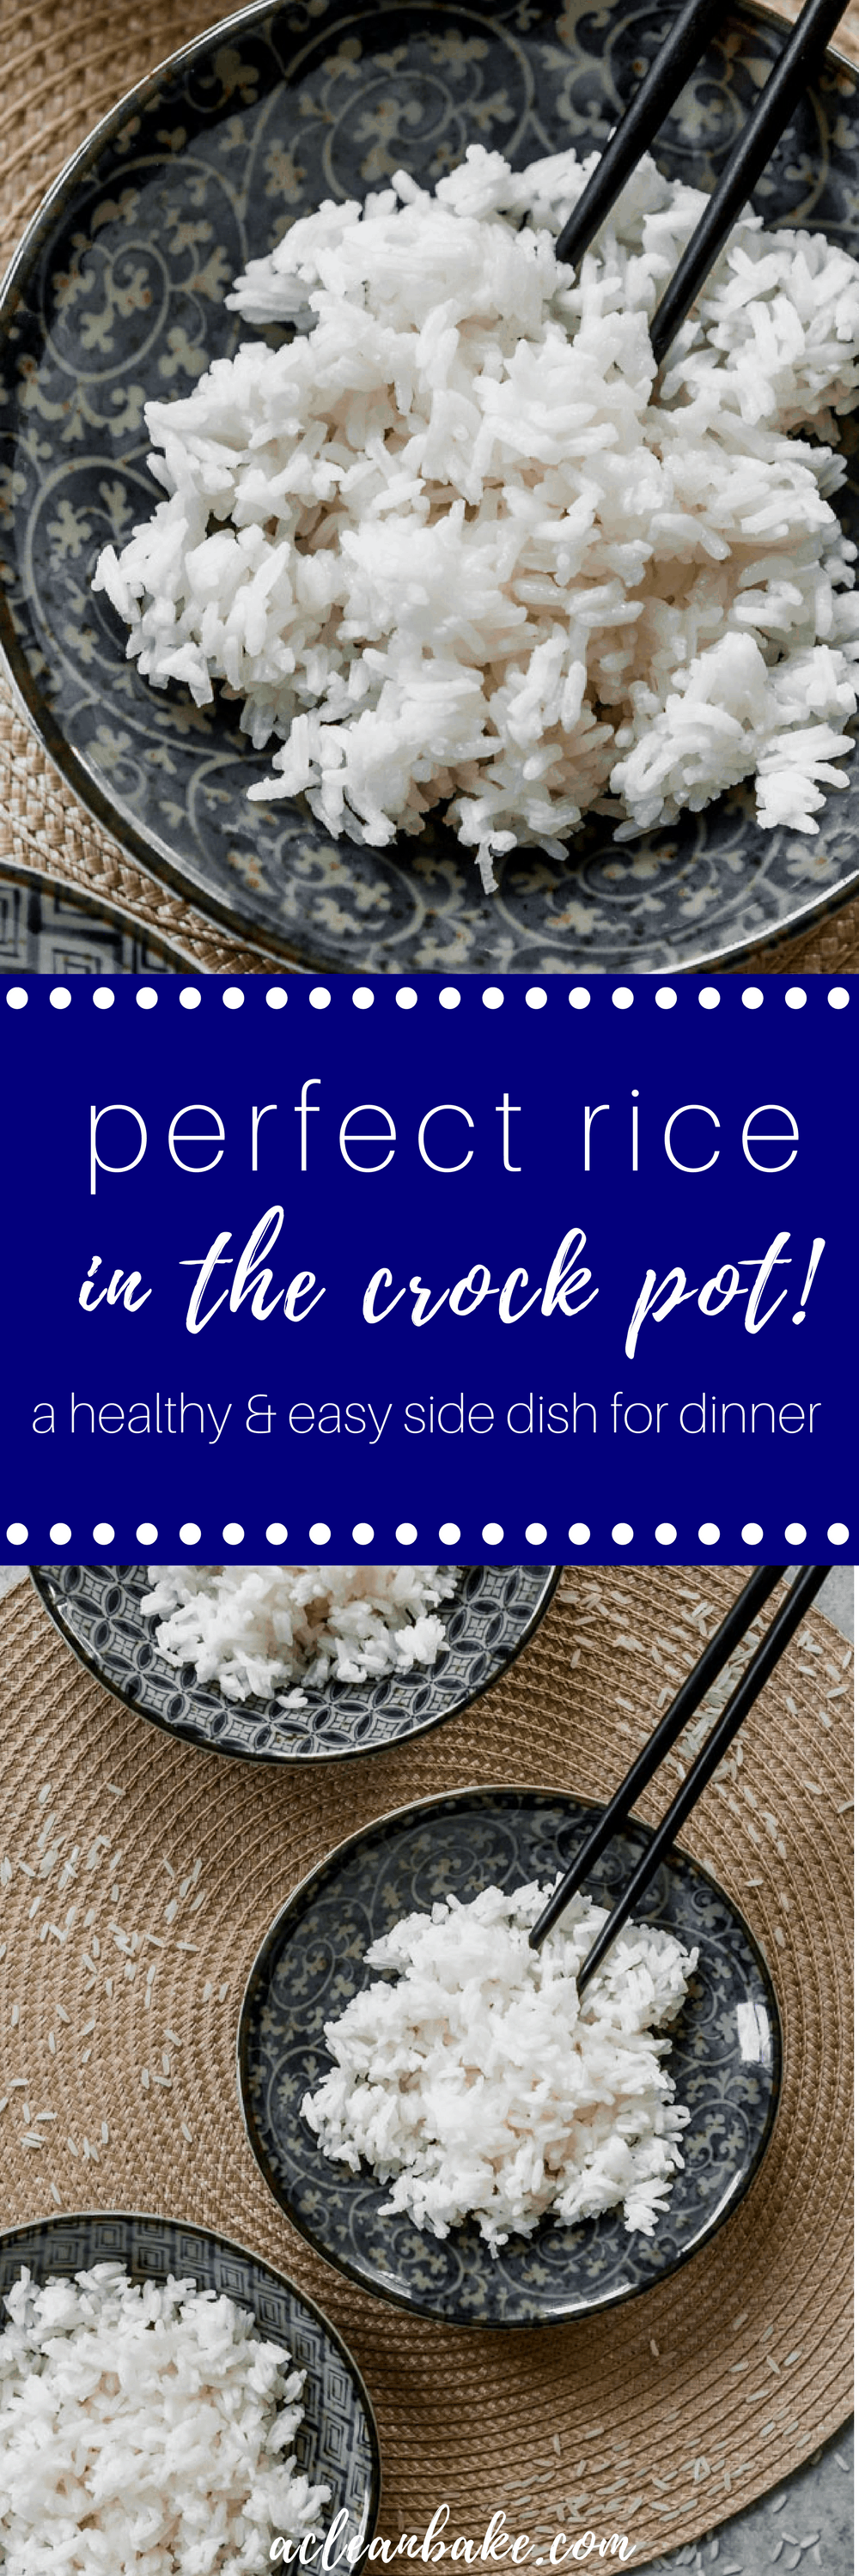 Slow Cooker Rice- How To Cook Rice In The Crock Pot (gluten free and paleo side dish) #glutenfree #paleo #sidedish #recipe #rice #slowcooker #crockpot